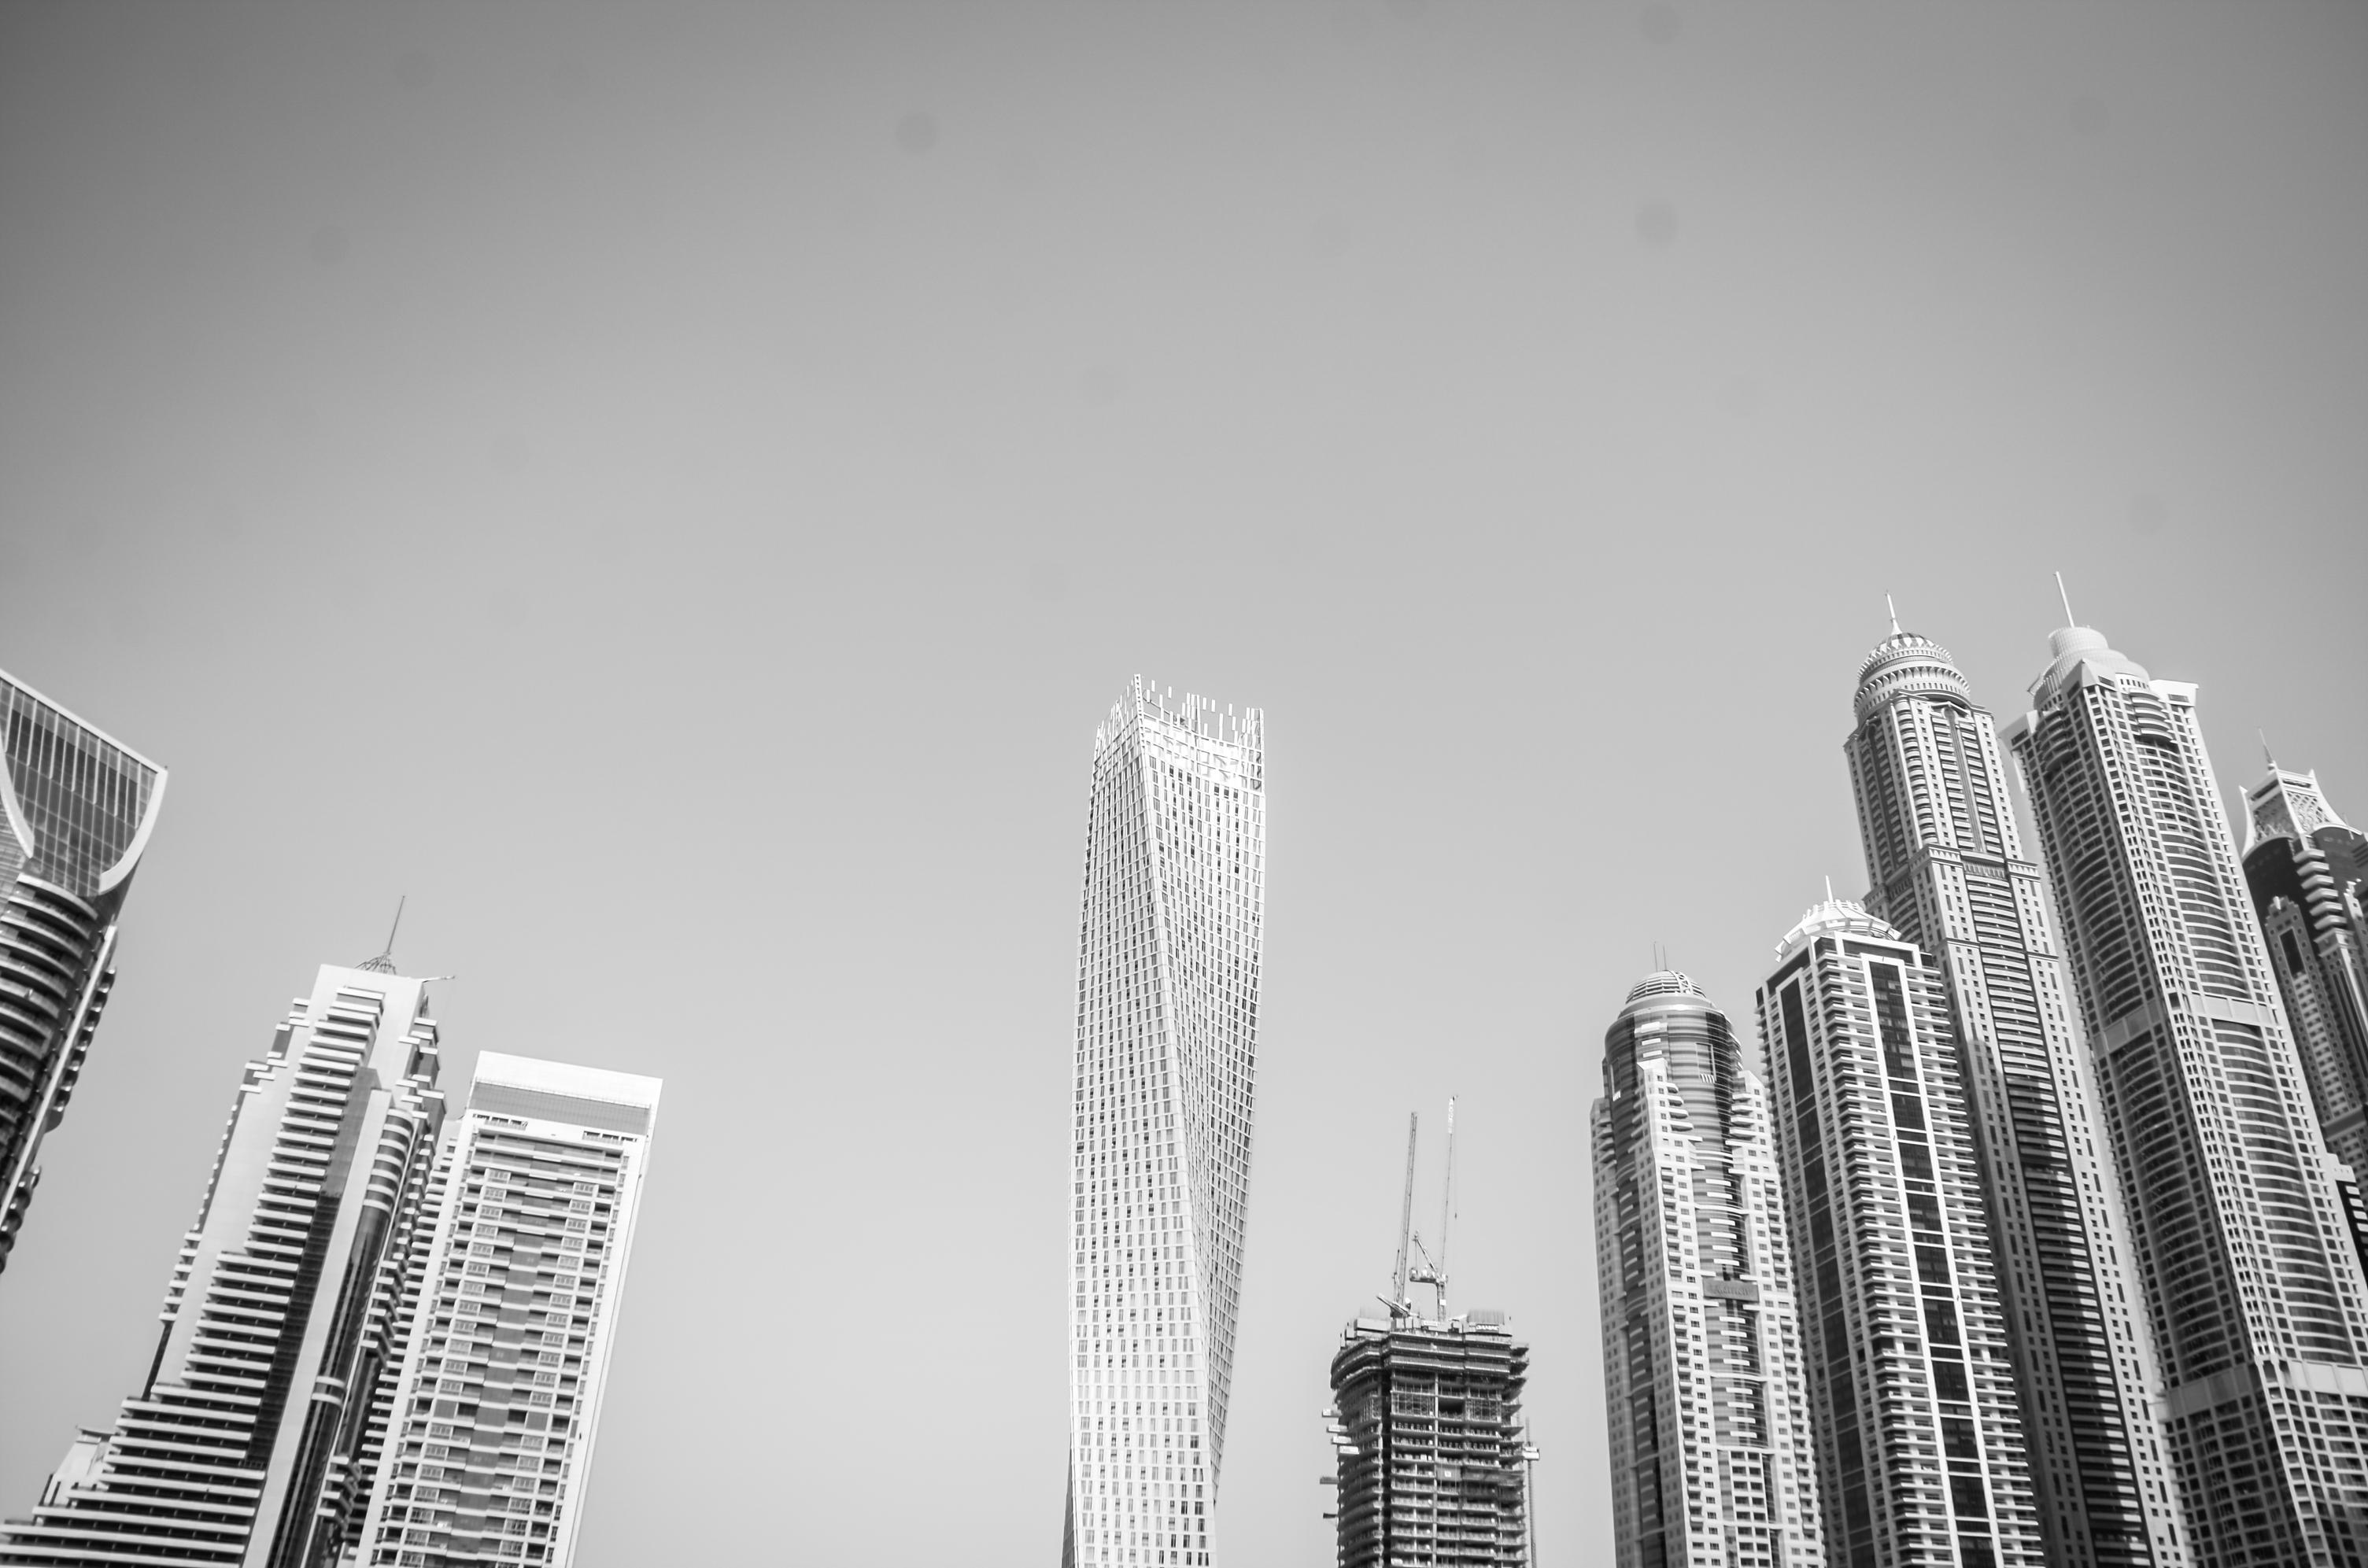 Dubai Impression 1 by loptix